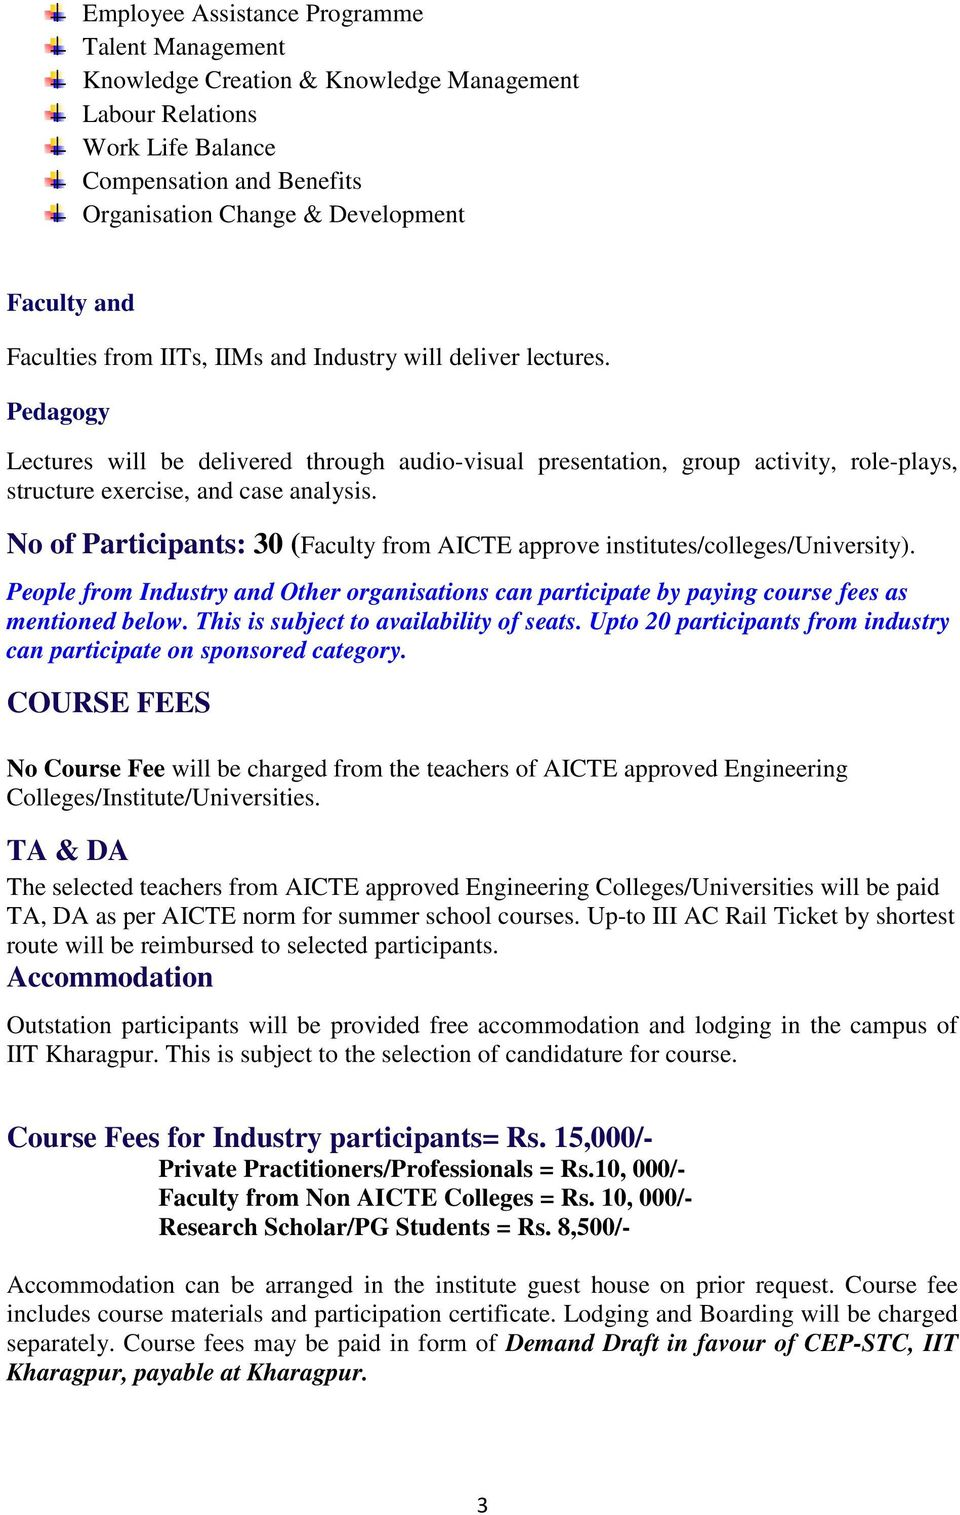 No of Participants: 30 (Faculty from AICTE approve institutes/colleges/university). People from Industry and Other organisations can participate by paying course fees as mentioned below.